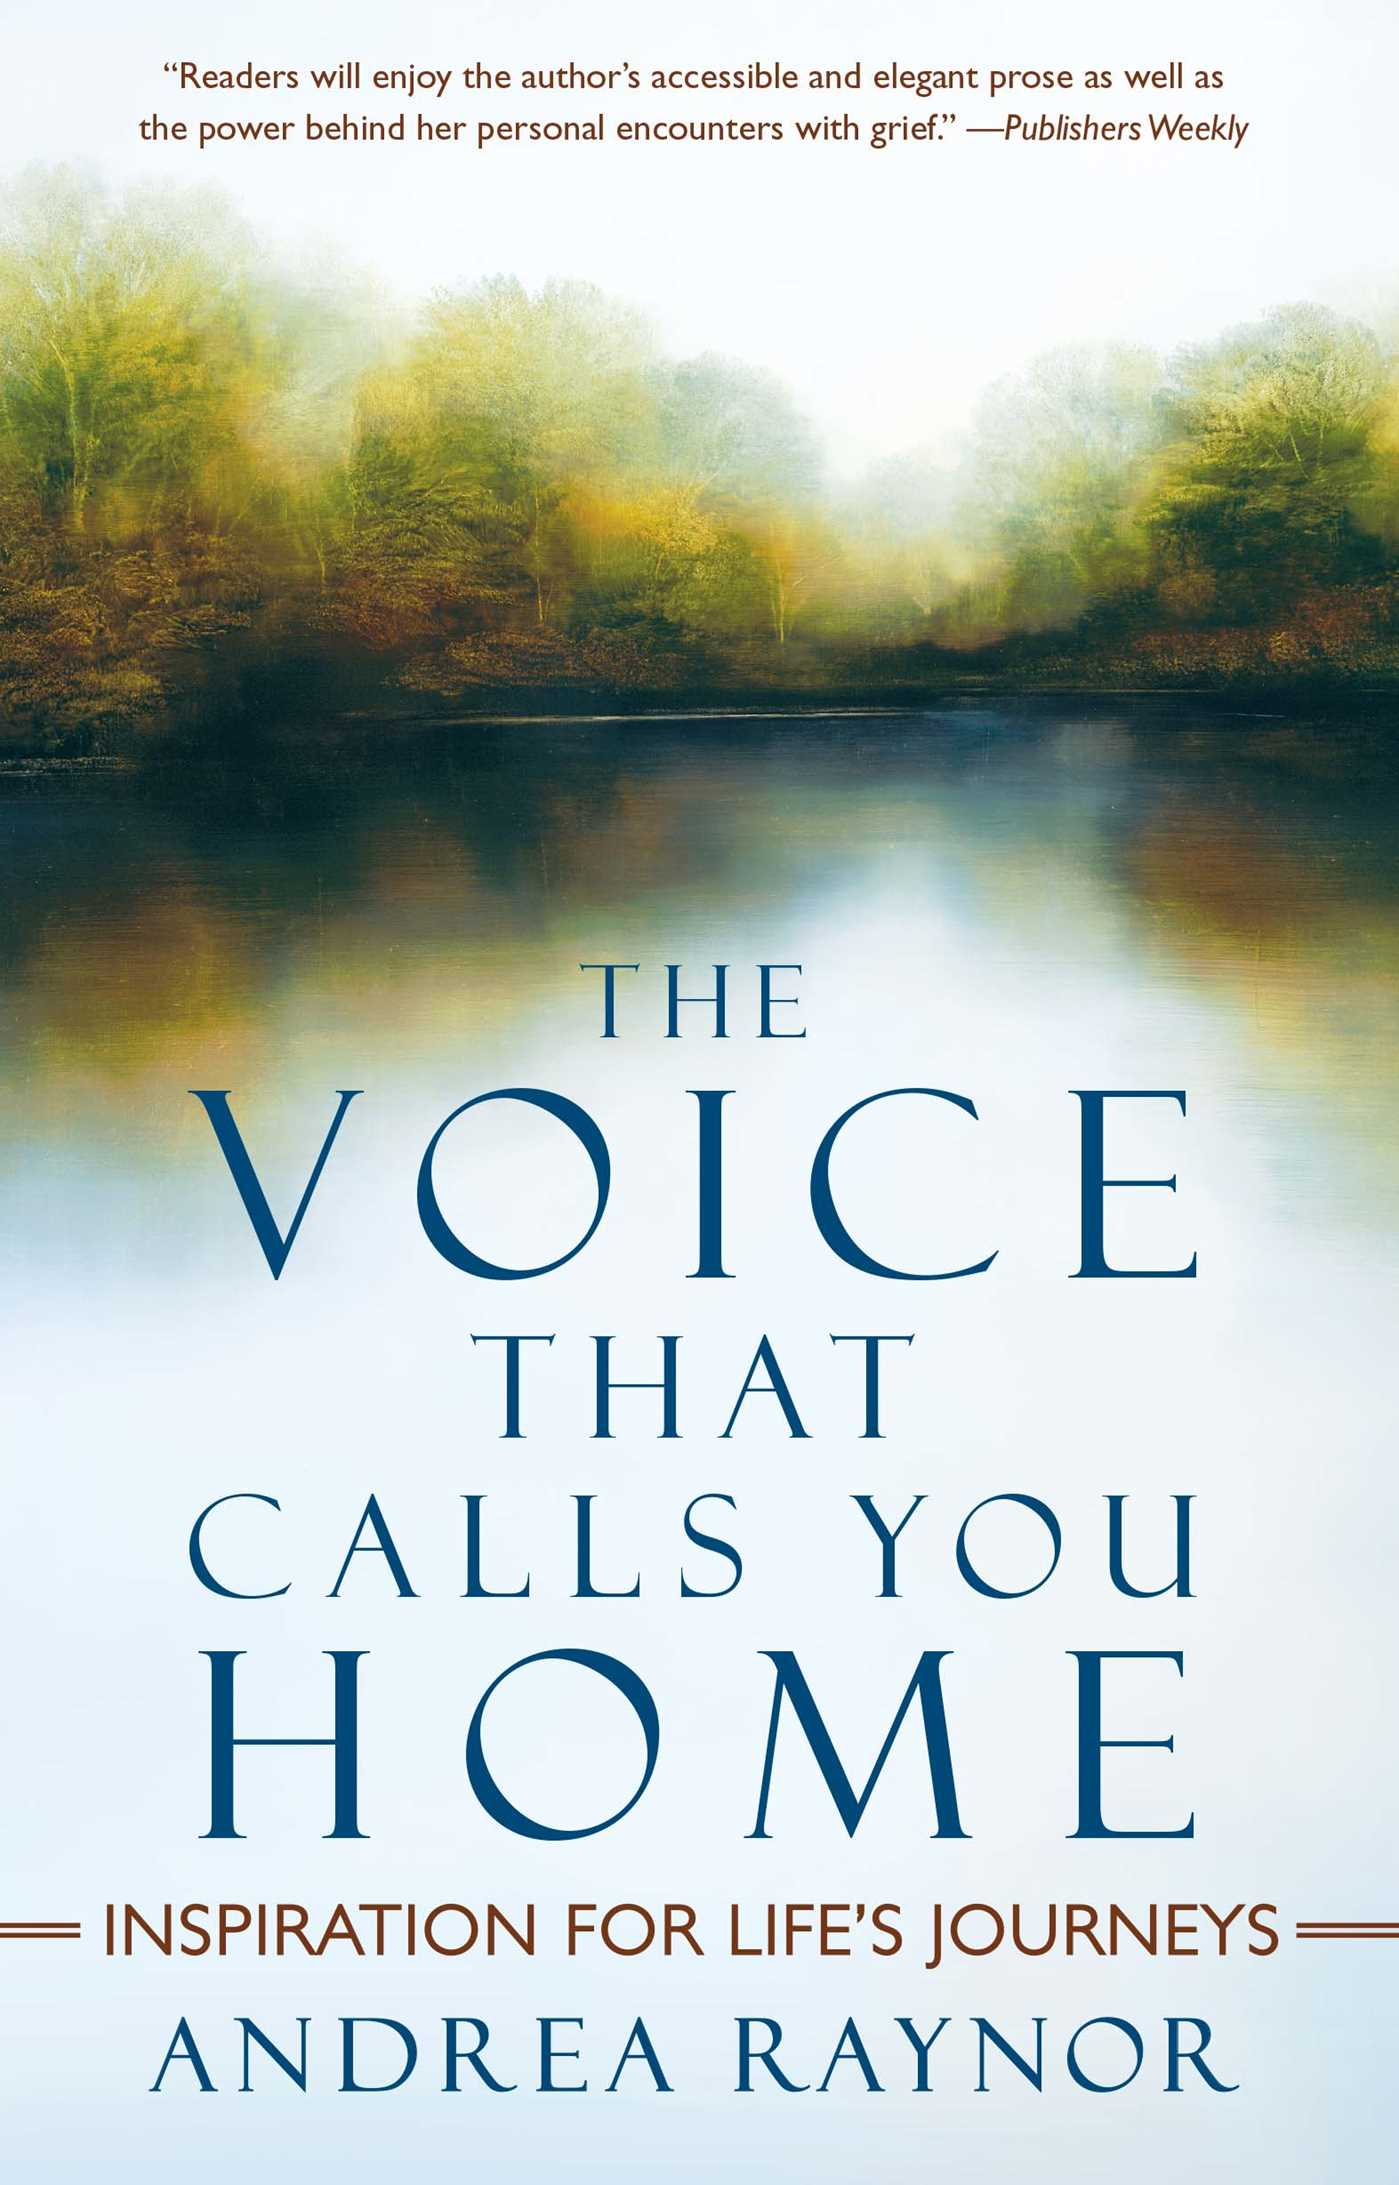 The voice that calls you home 9781416596127 hr